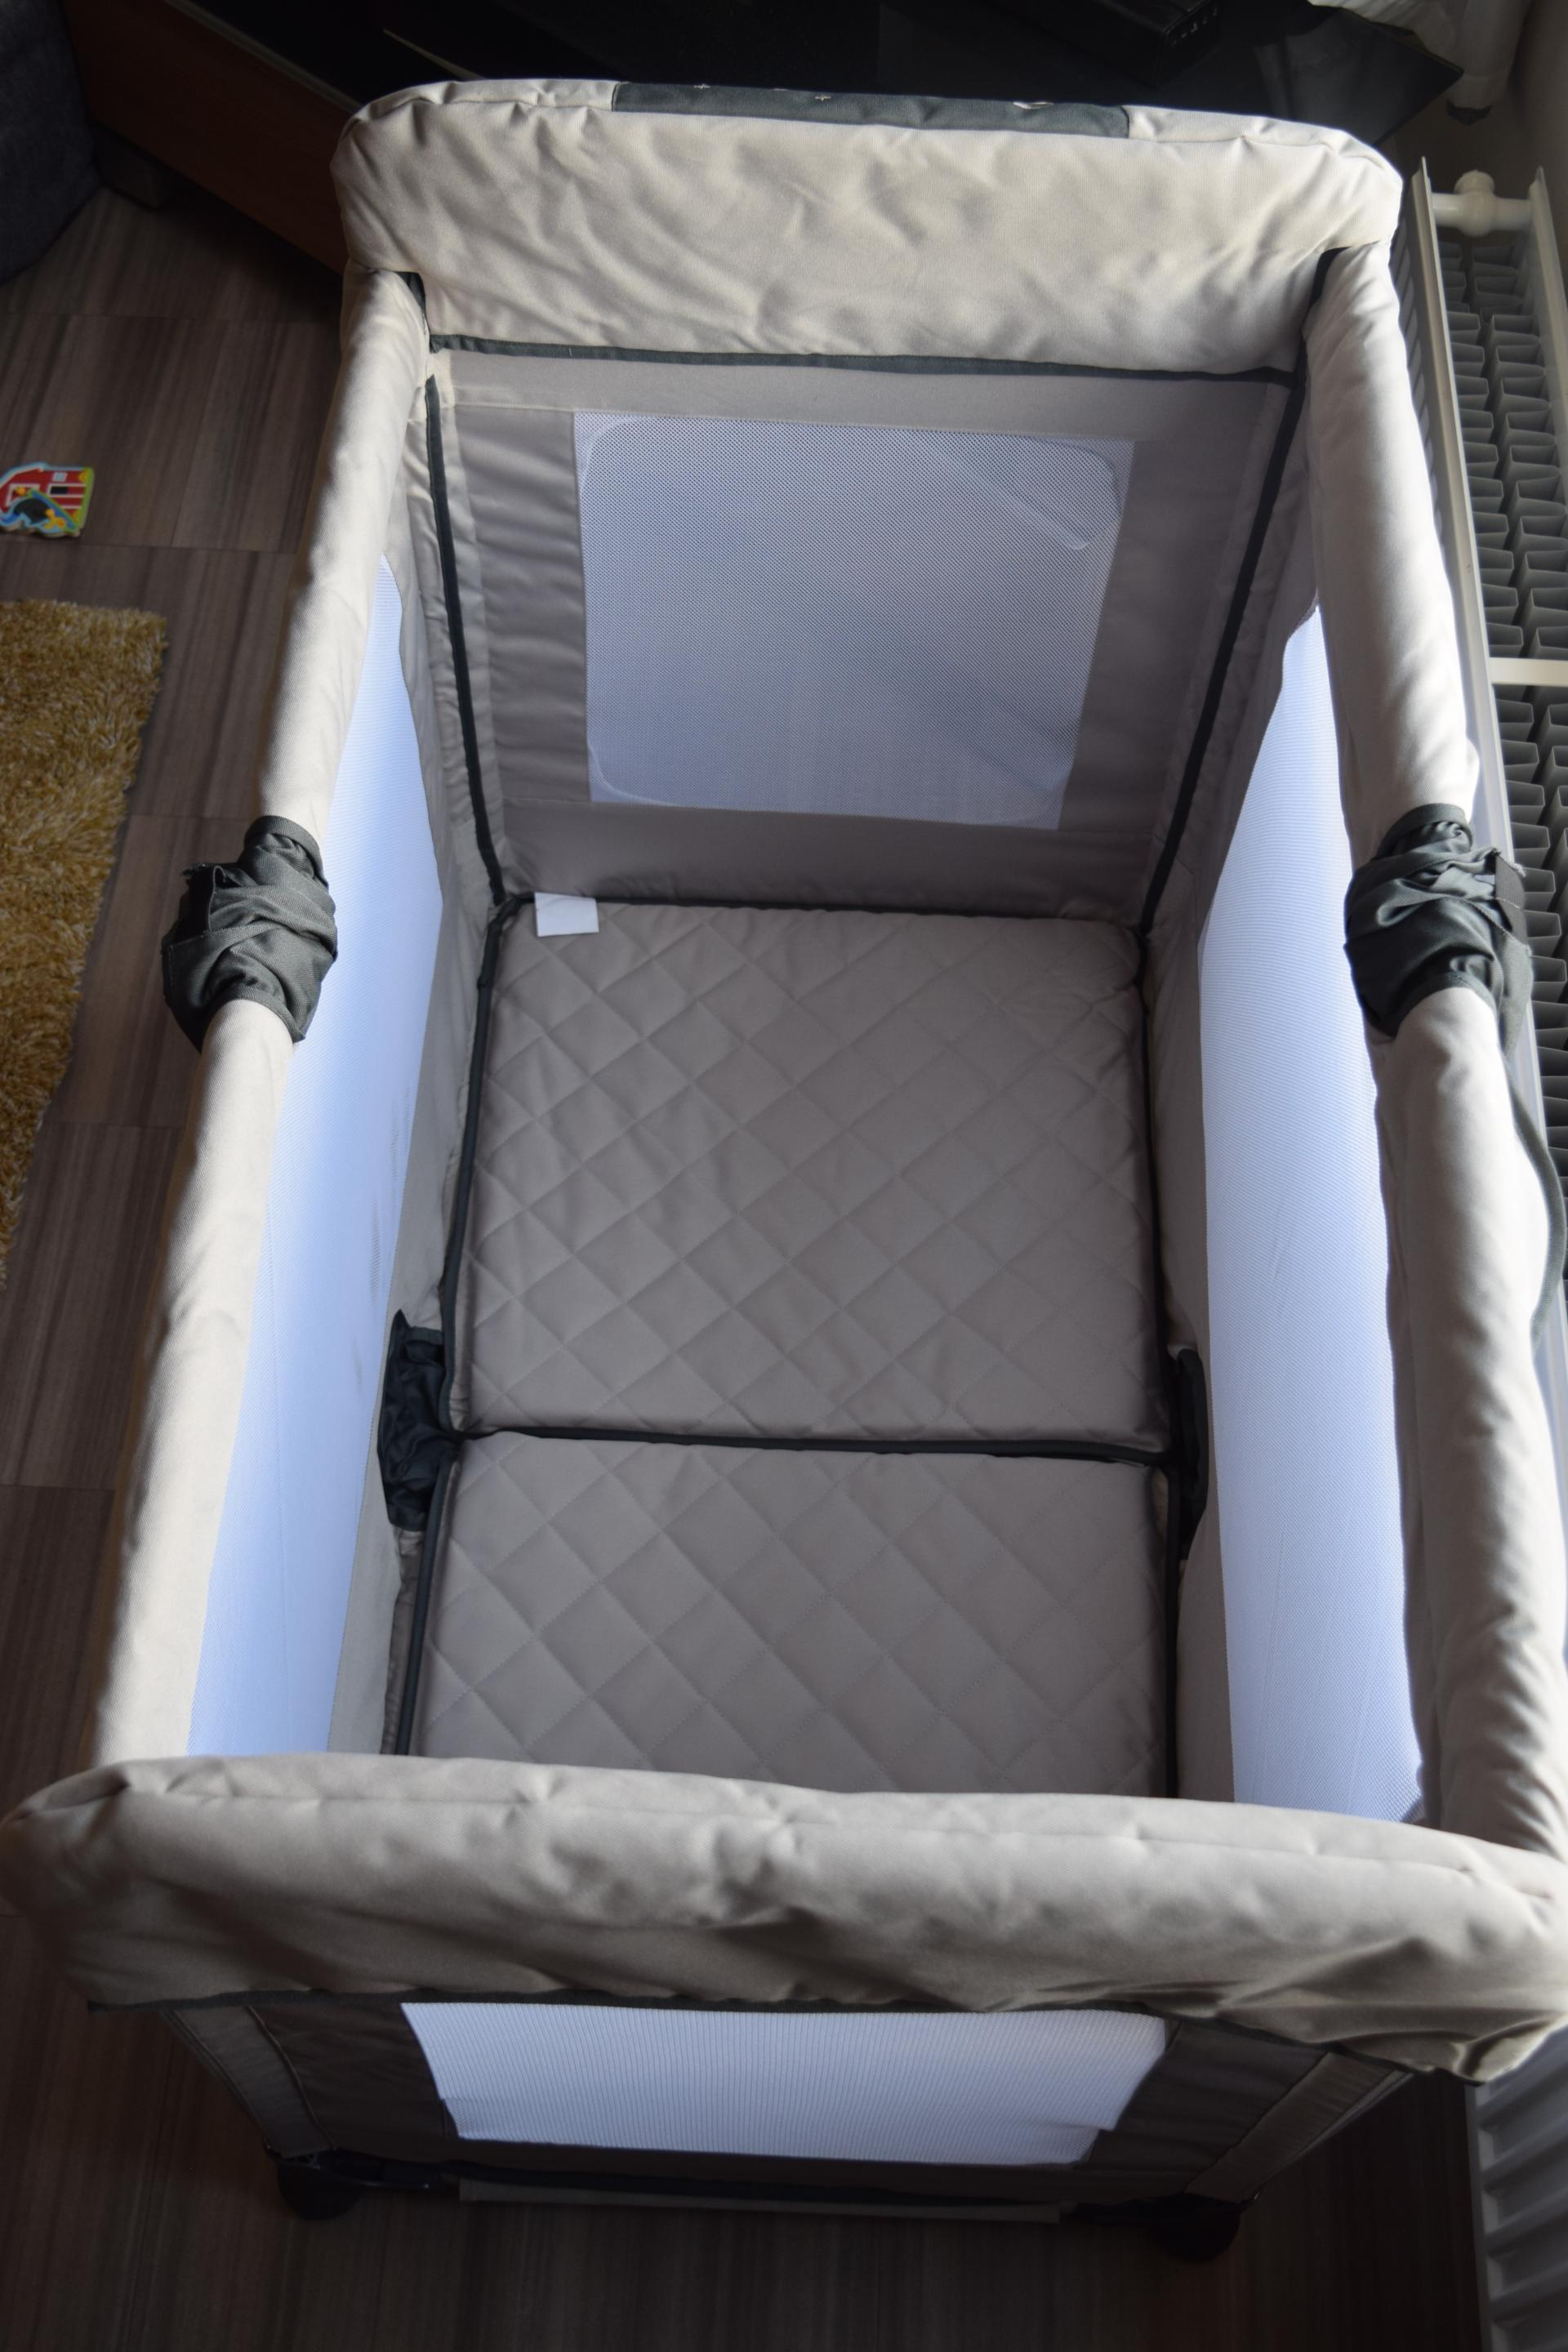 SpaceCot